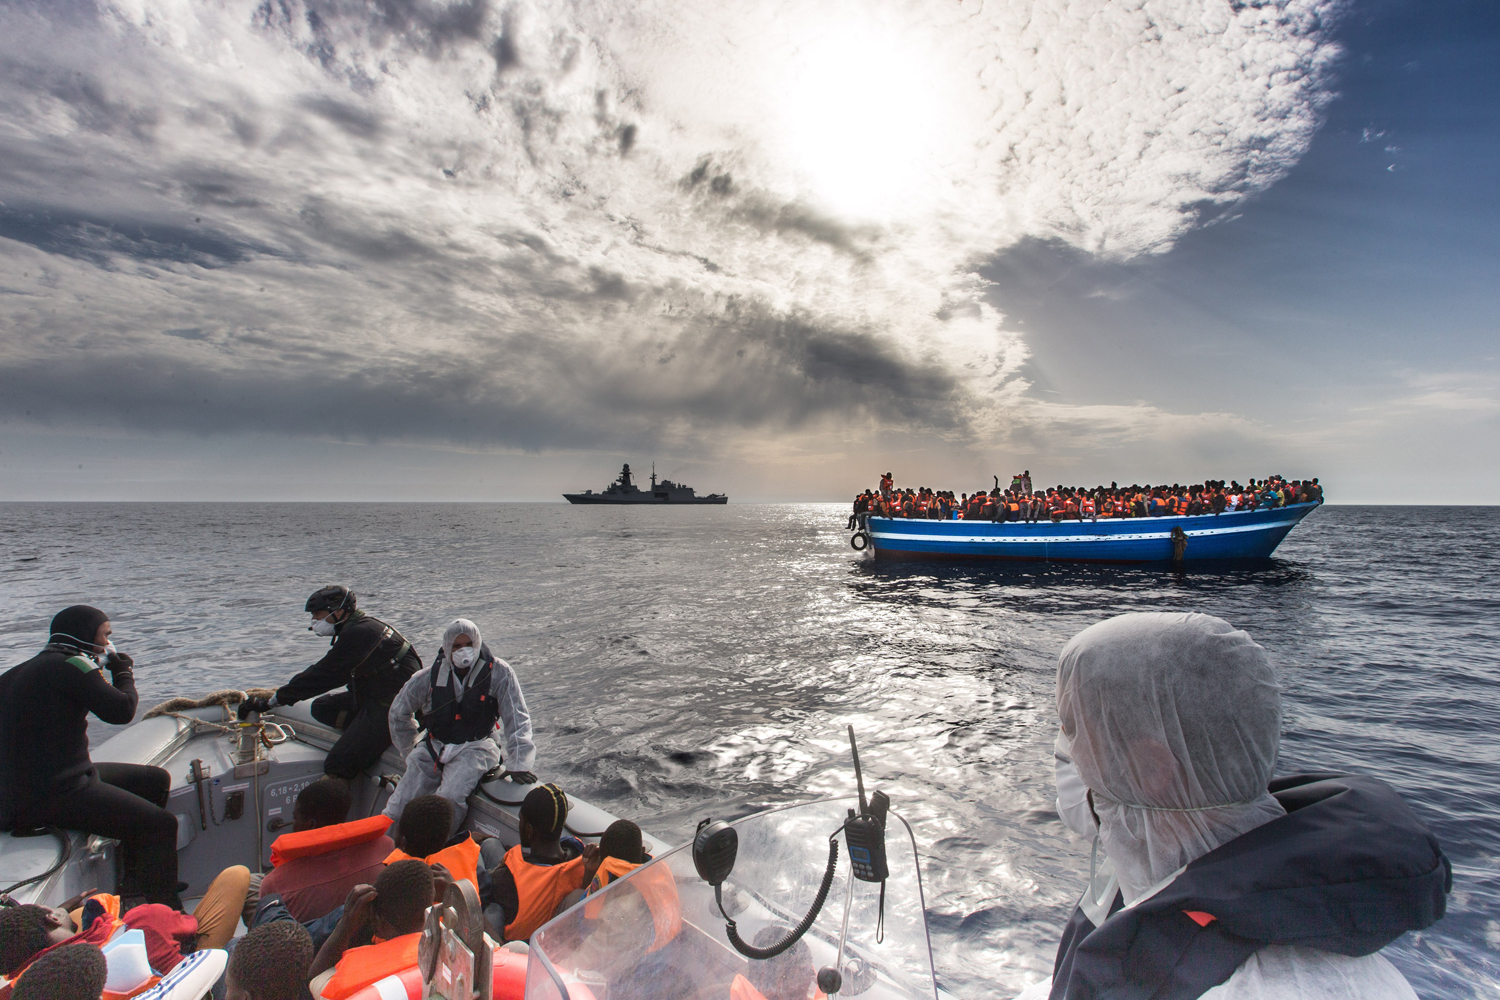 Refugees rescued off a boat and carried onto an Italian navy ship, June 7, 2014.